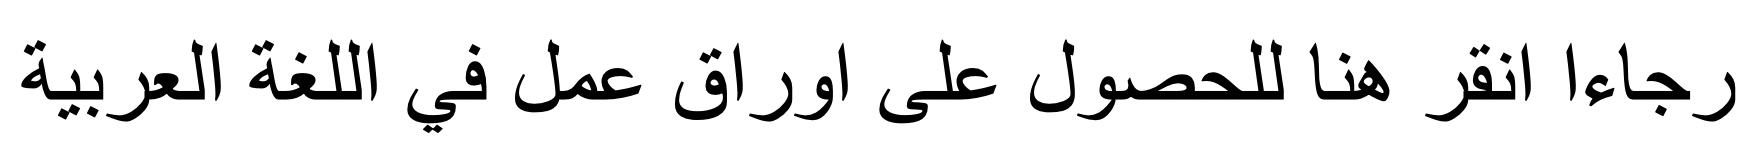 Please click here for worsksheets available in Arabic